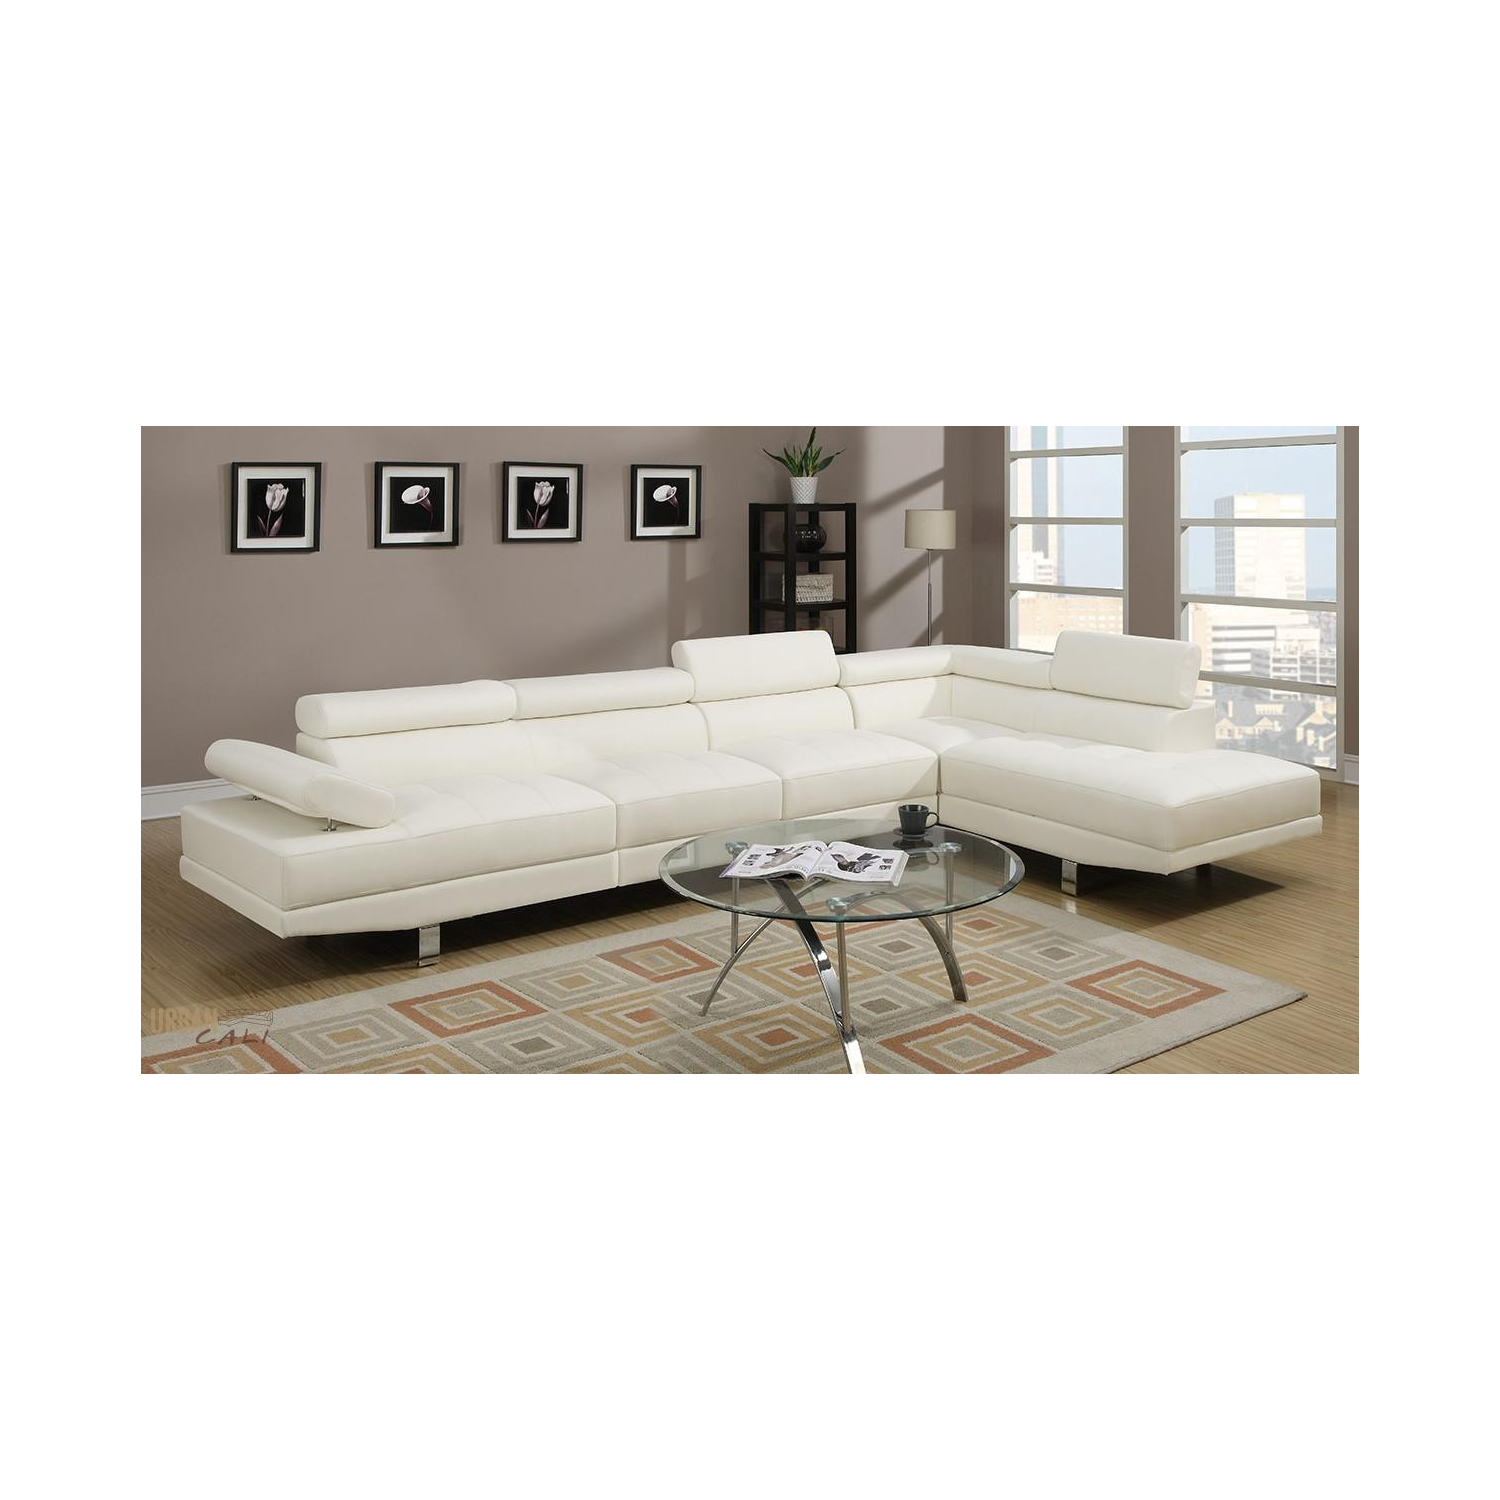 Lovely hollywood white faux leather adjustable sectional for Hollywood white faux leather adjustable sectional sofa by urban cali